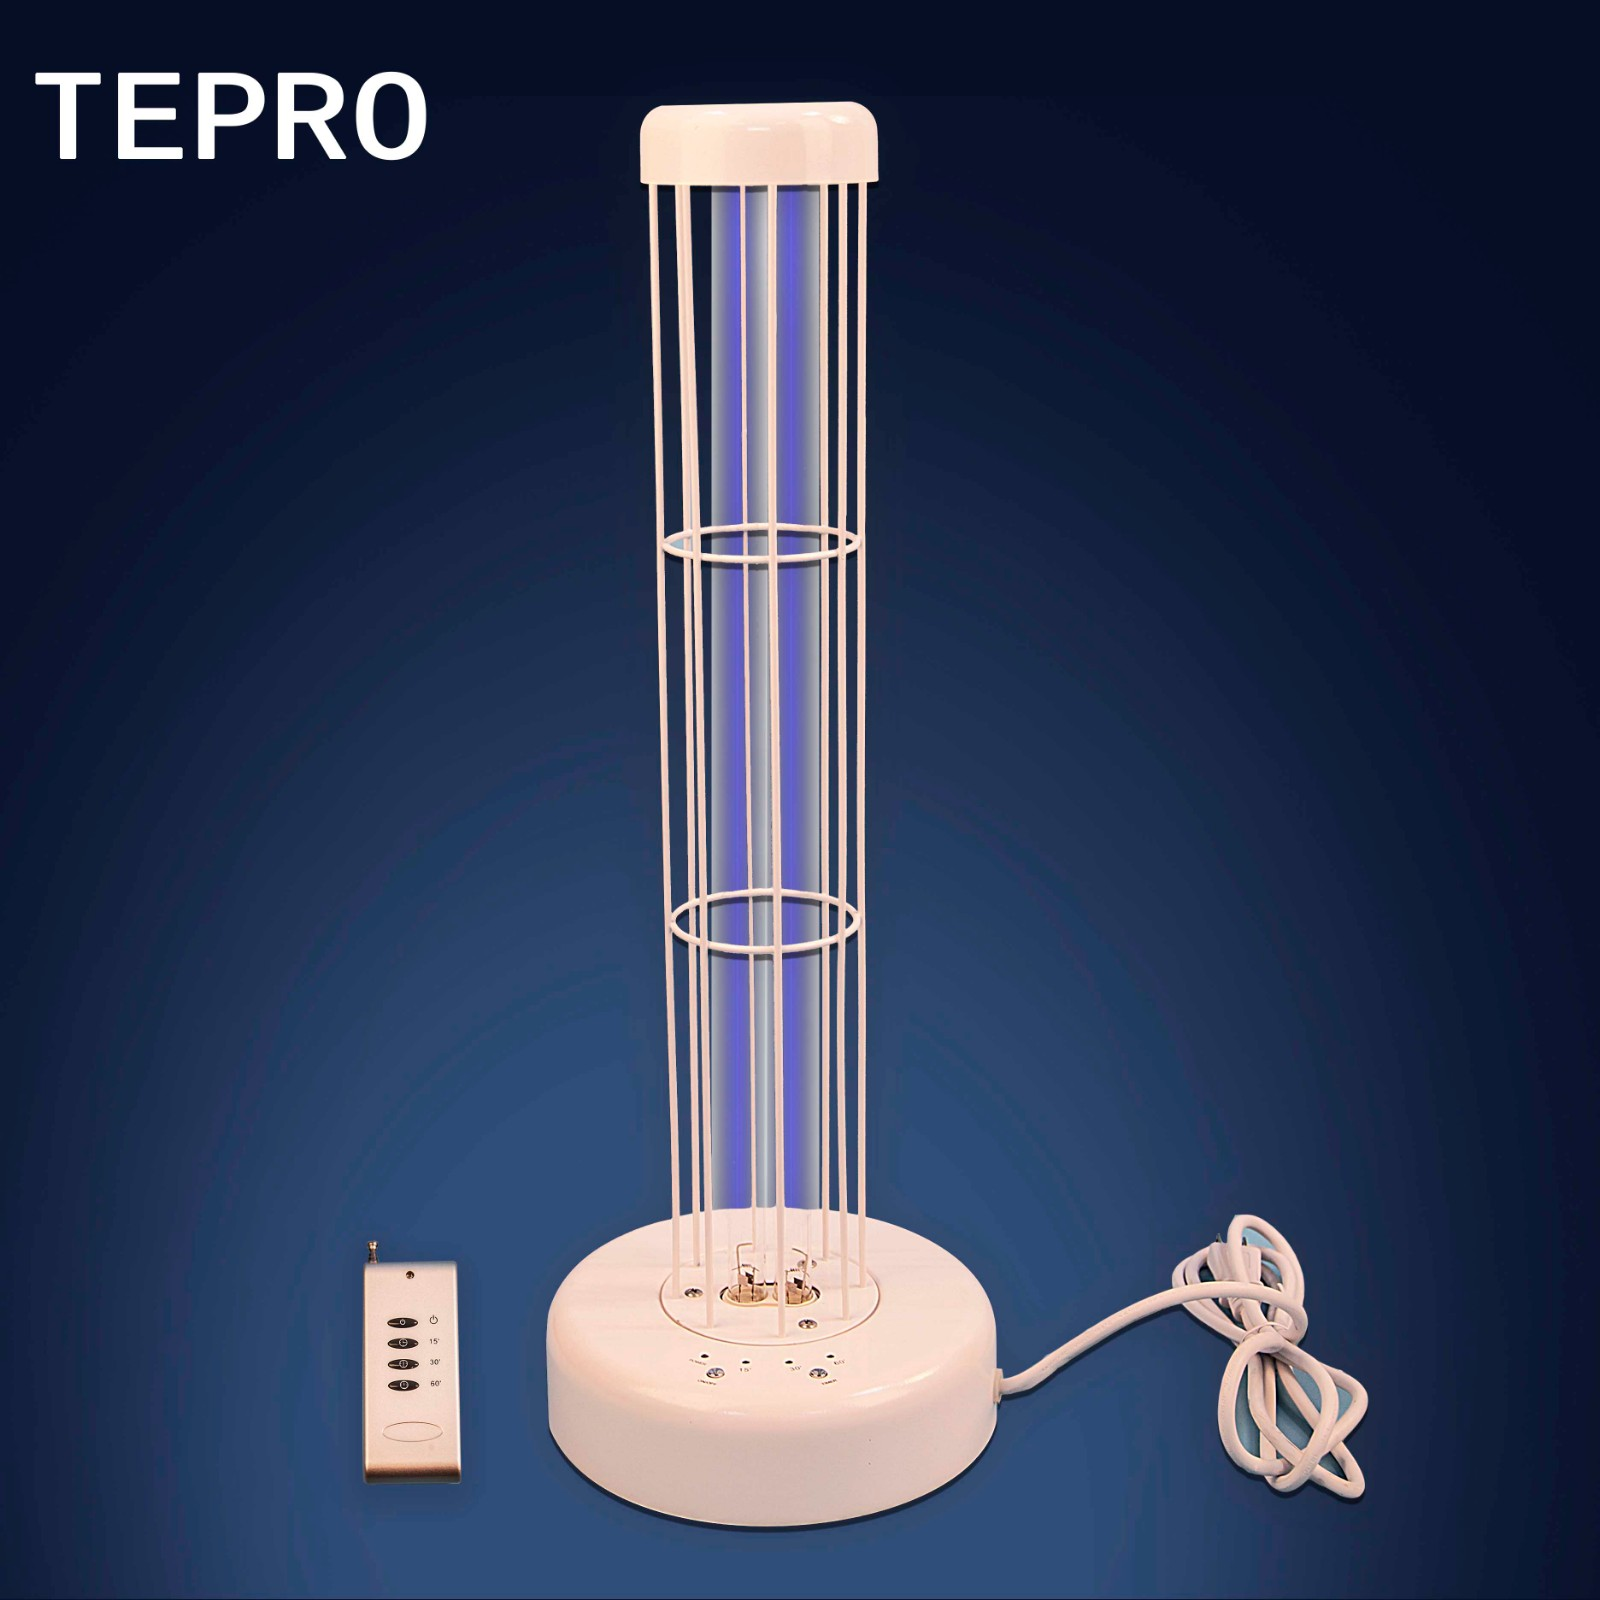 Tepro-Analysis Of The Influence Of Ultraviolet Penetration, Tepro china Co, Ltd